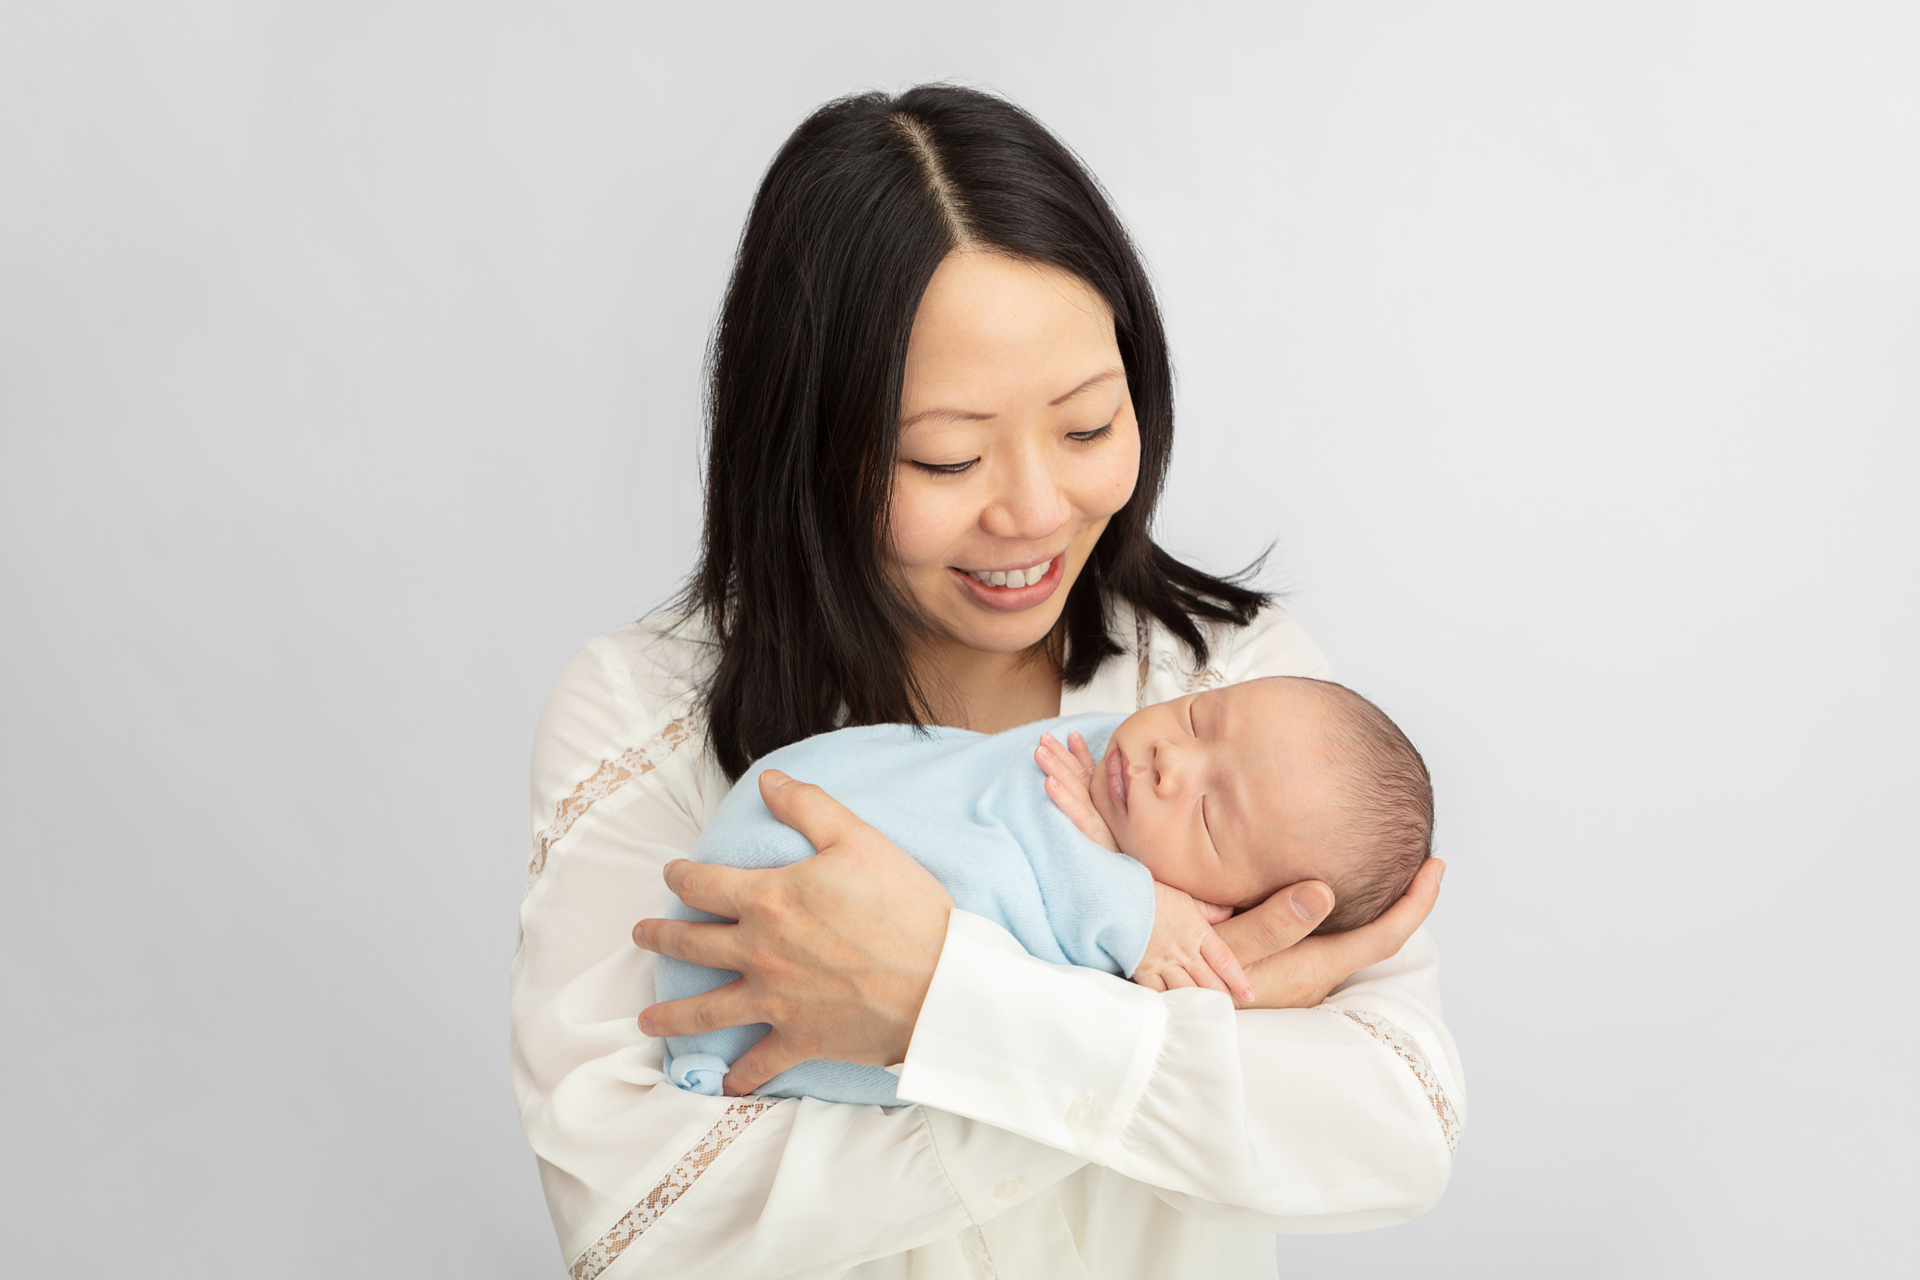 happy new mom holding her newborn baby in her arms, who is swaddled in blue